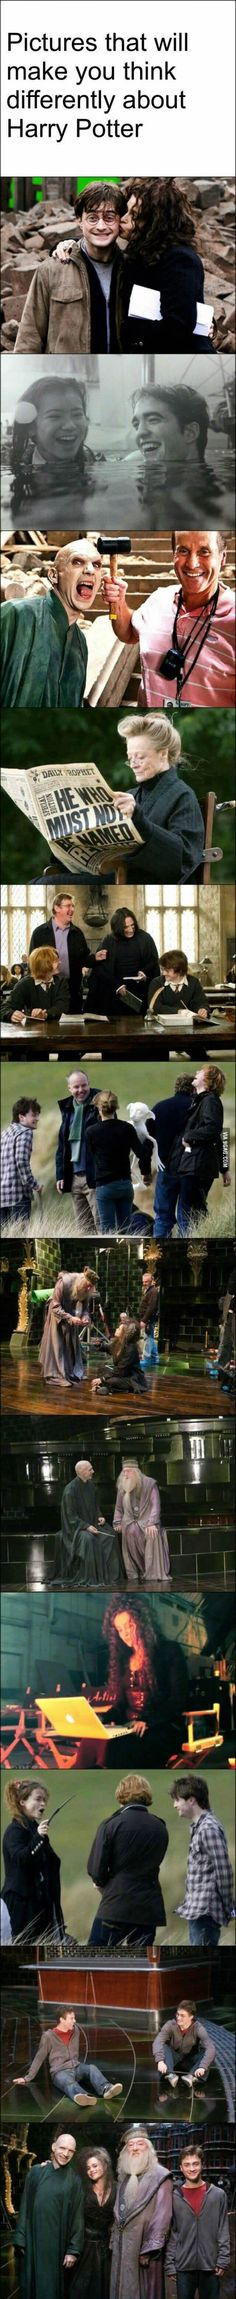 Rare Harry Potter behind the scene photos.